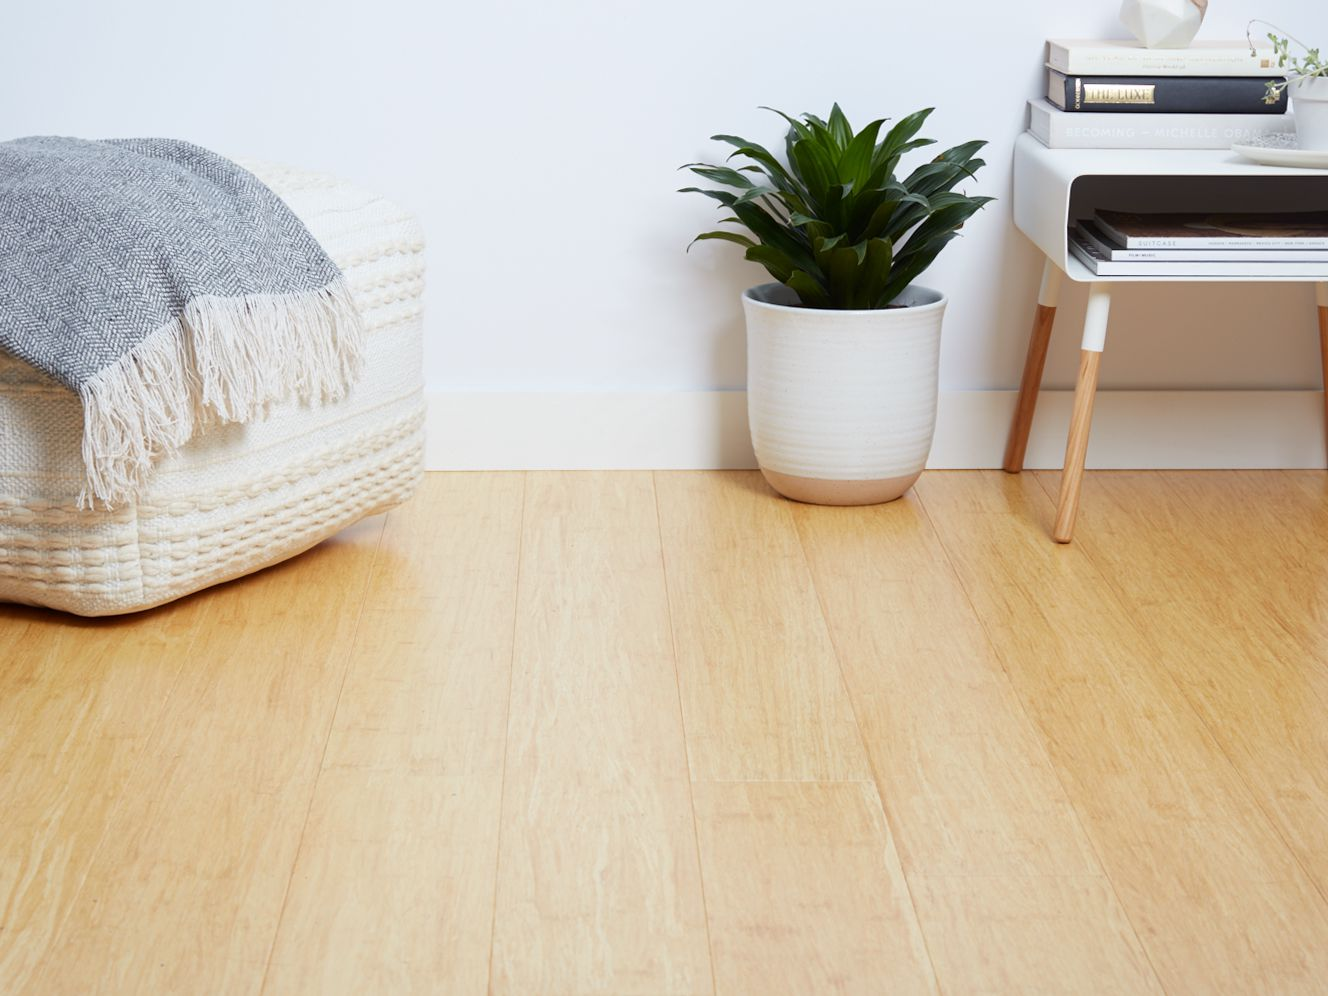 Bamboo Flooring Pros and Cons